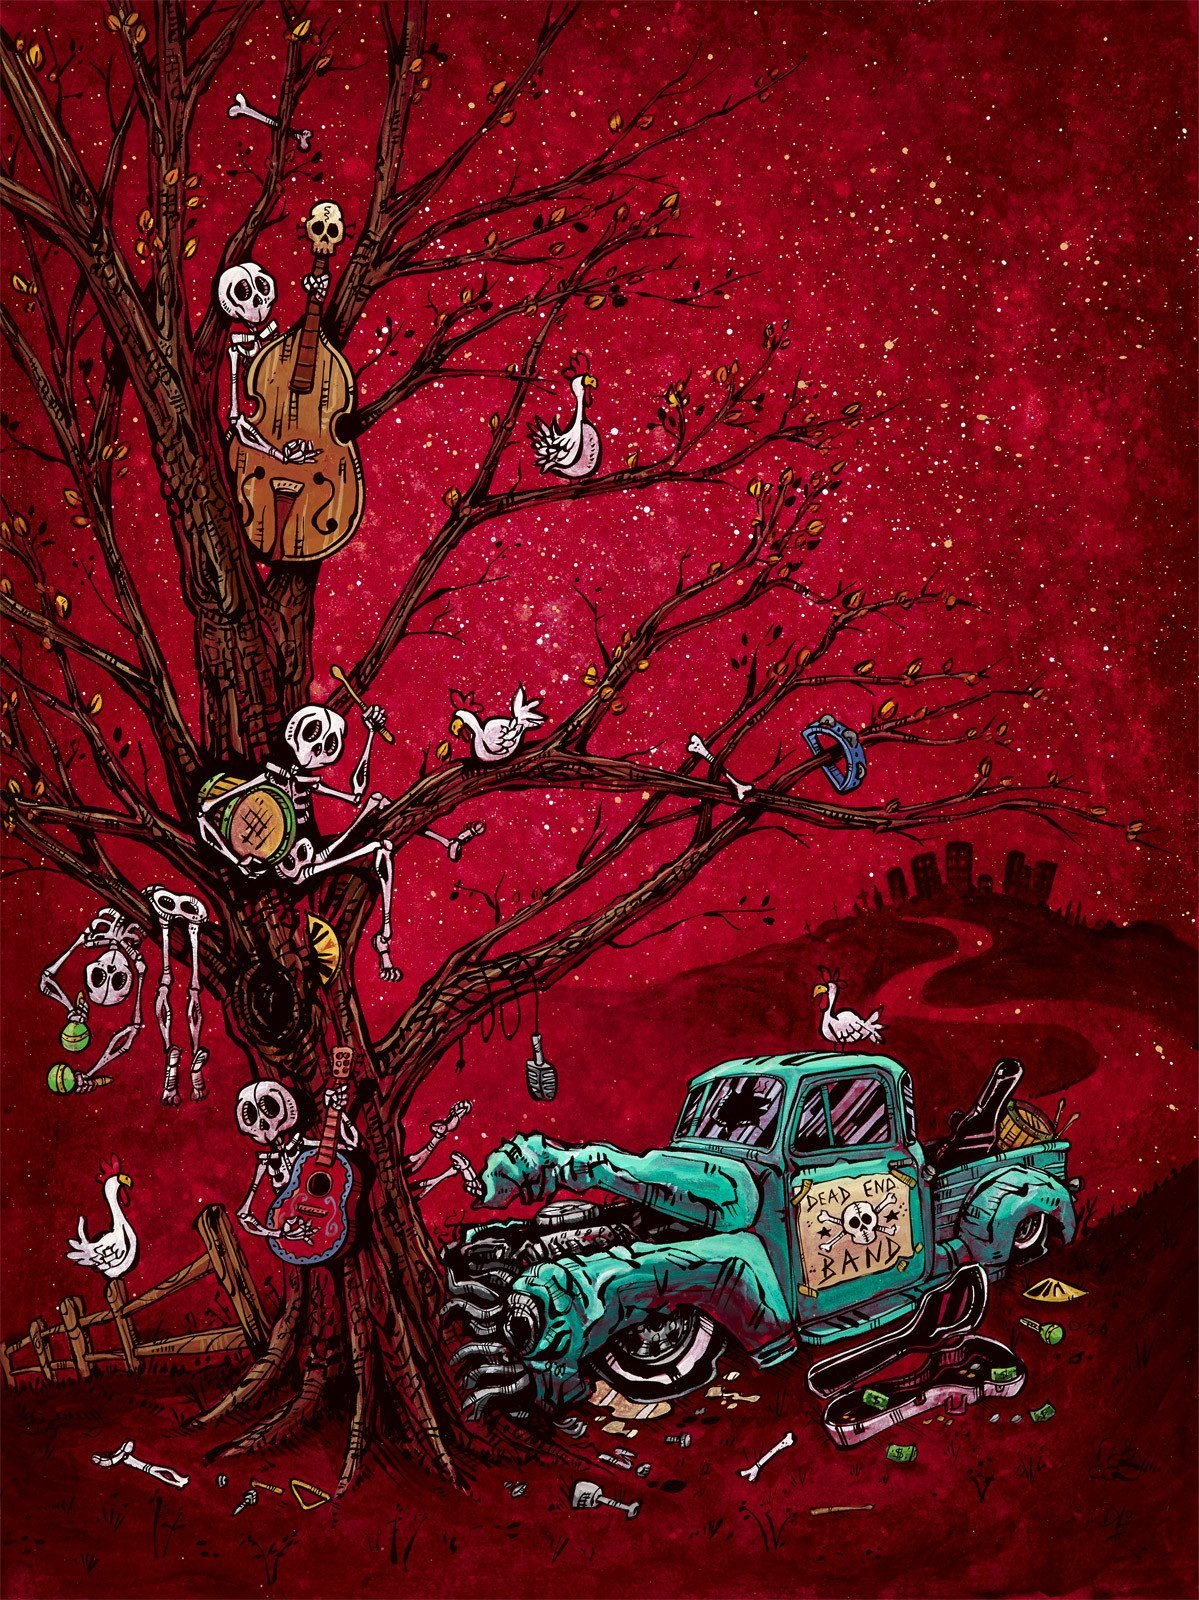 The Dead End Band by Day of the Dead Artist David Lozeau, Day of the Dead Art, Dia de los Muertos Art, Dia de los Muertos Artist